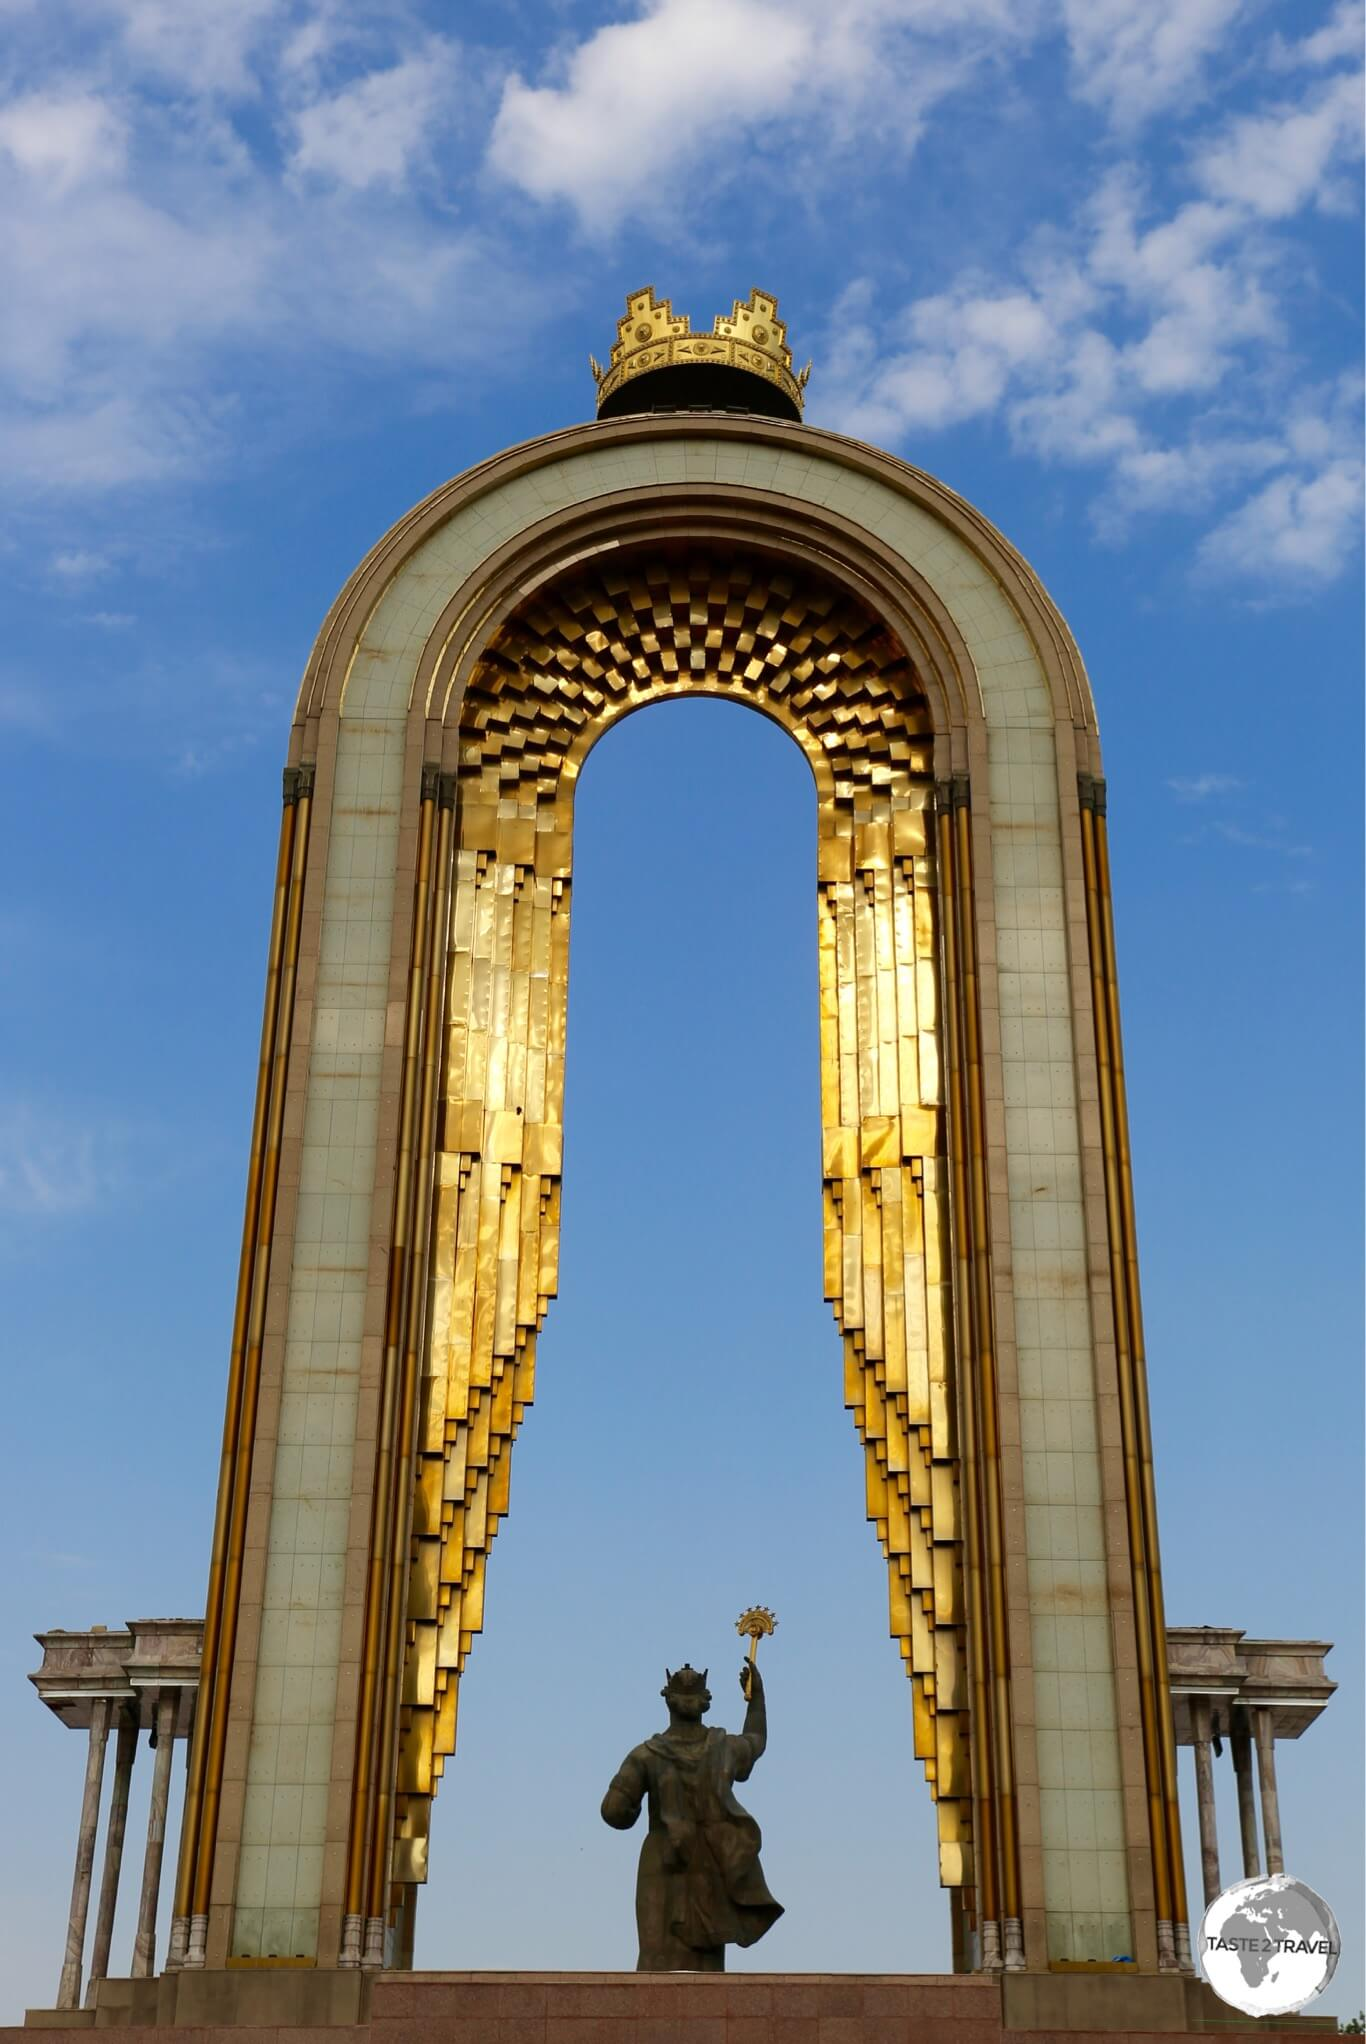 One of many monuments in Dushanbe, the Ismoili Somoni Statue illuminated at sunset.